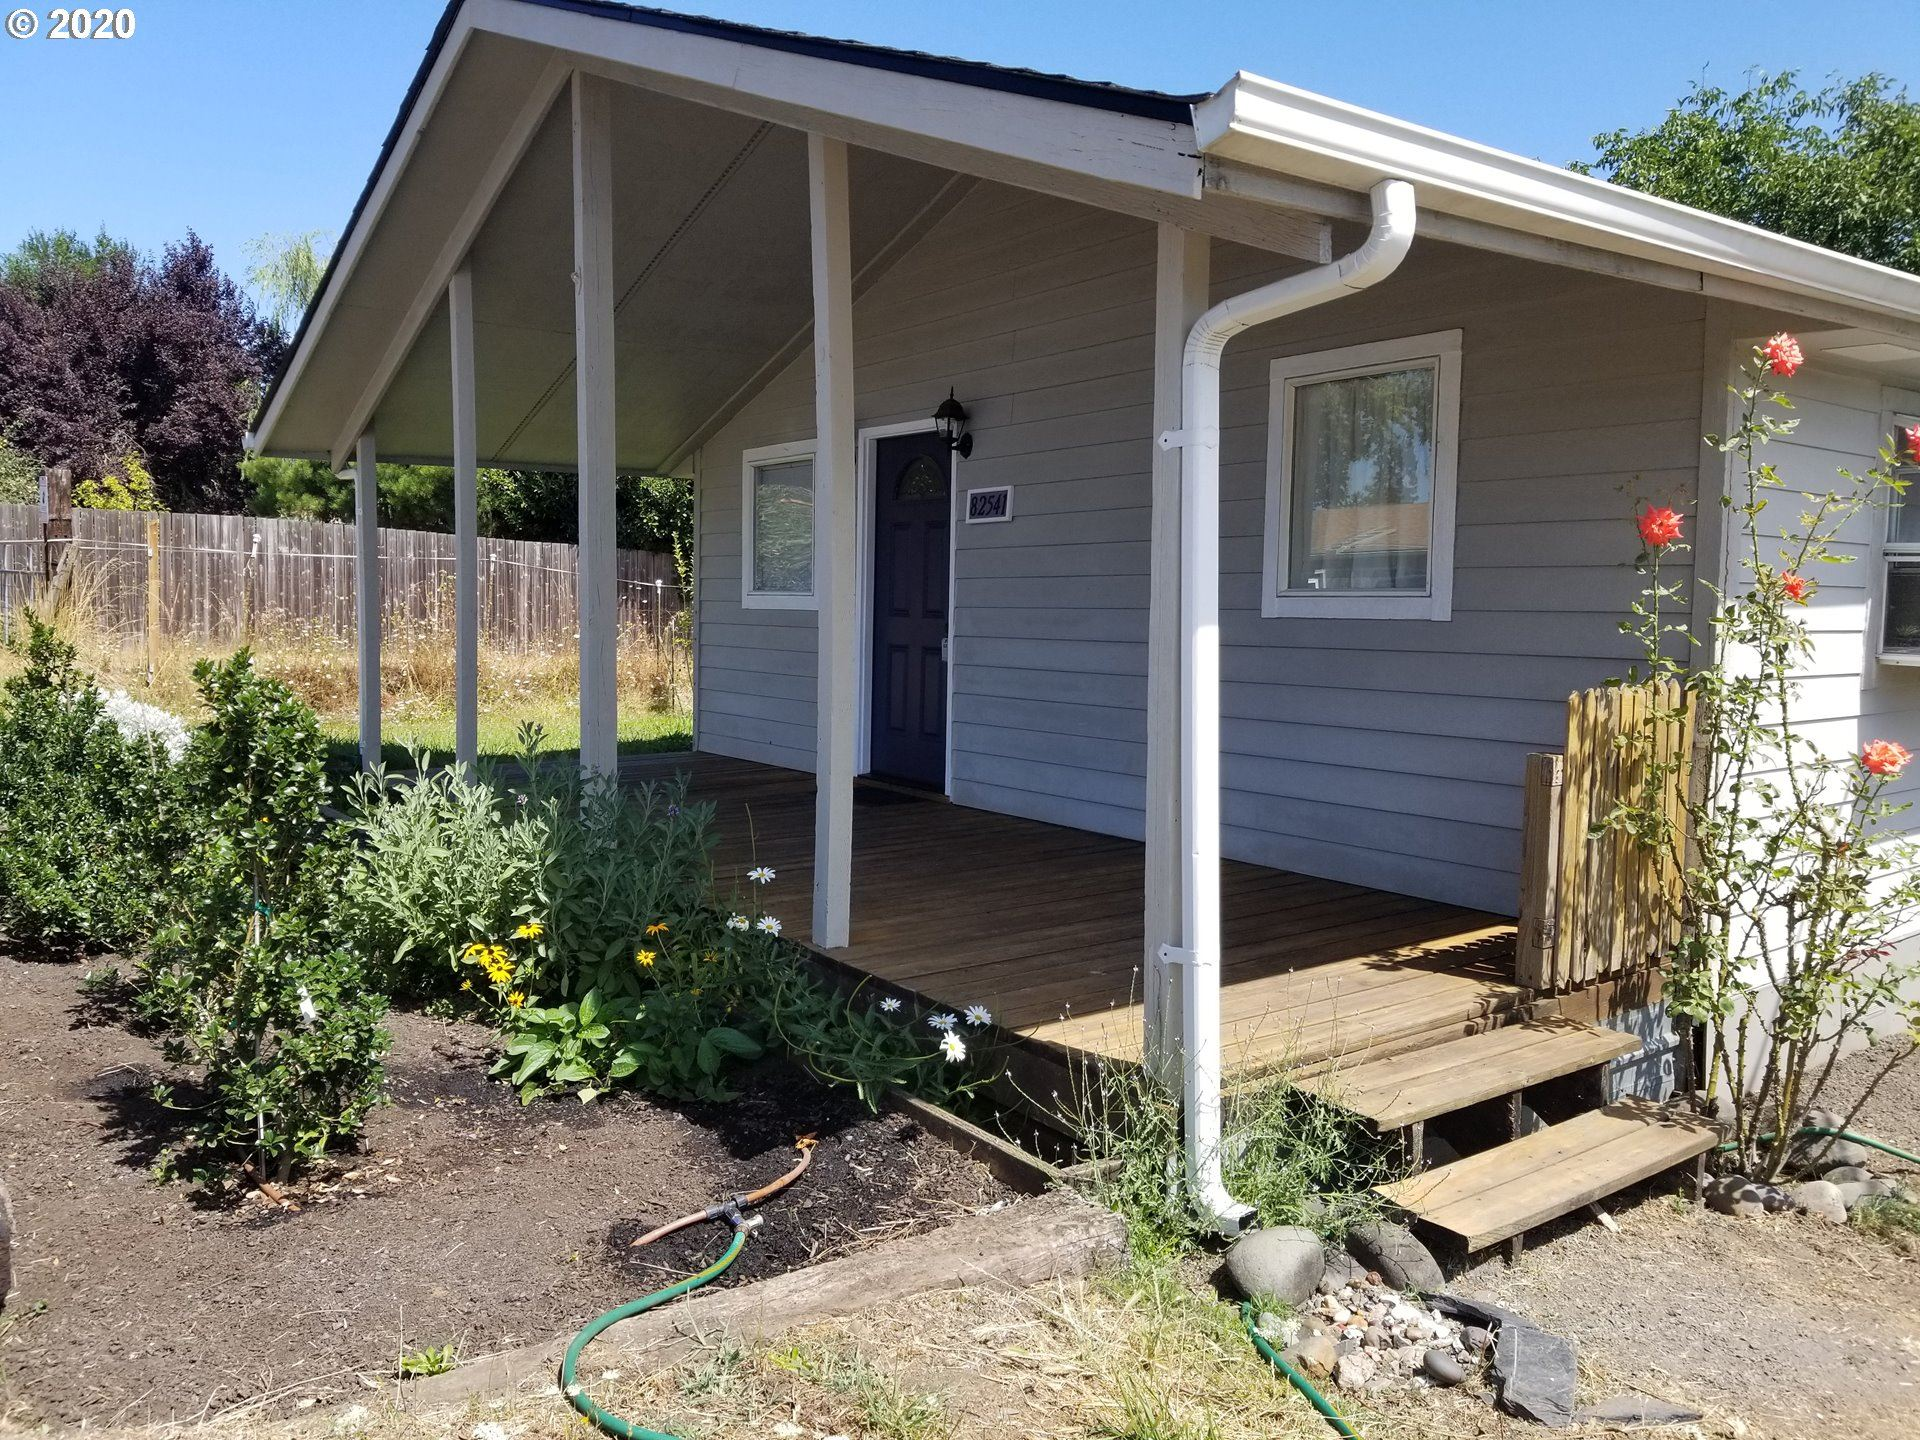 Photo for 82541 GREEN VALLEY ST, Creswell, OR 97426 (MLS # 20519177)